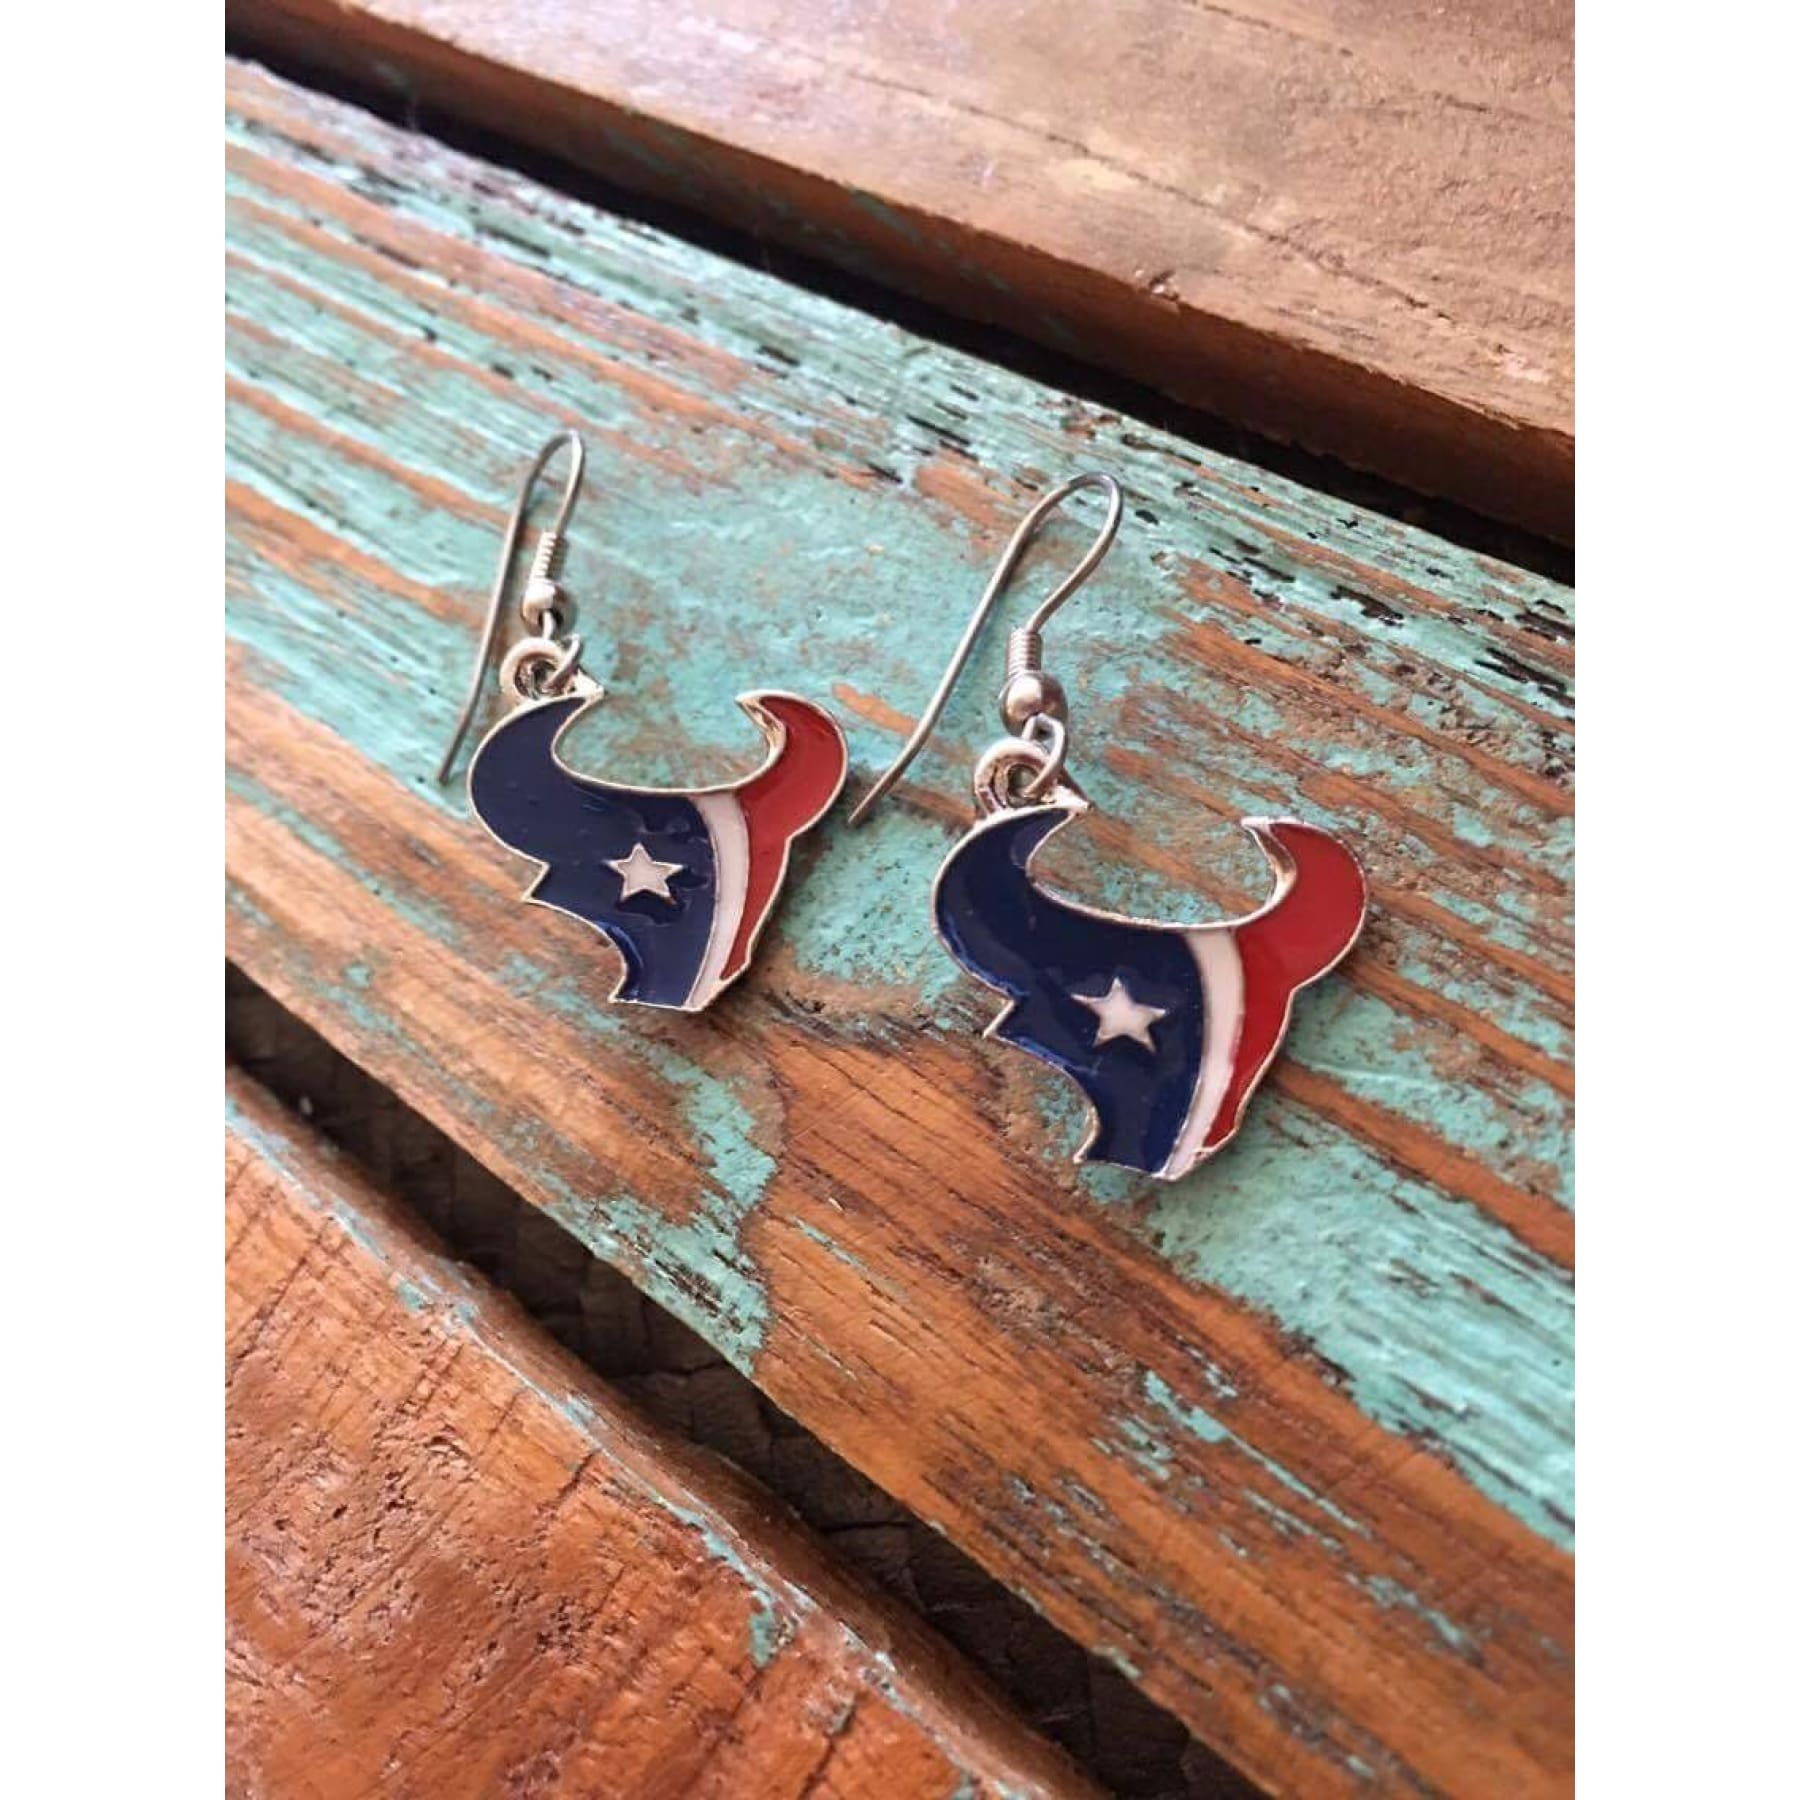 Houston Texans Bull Earrings,Earrings - Dirt Road Divas Boutique